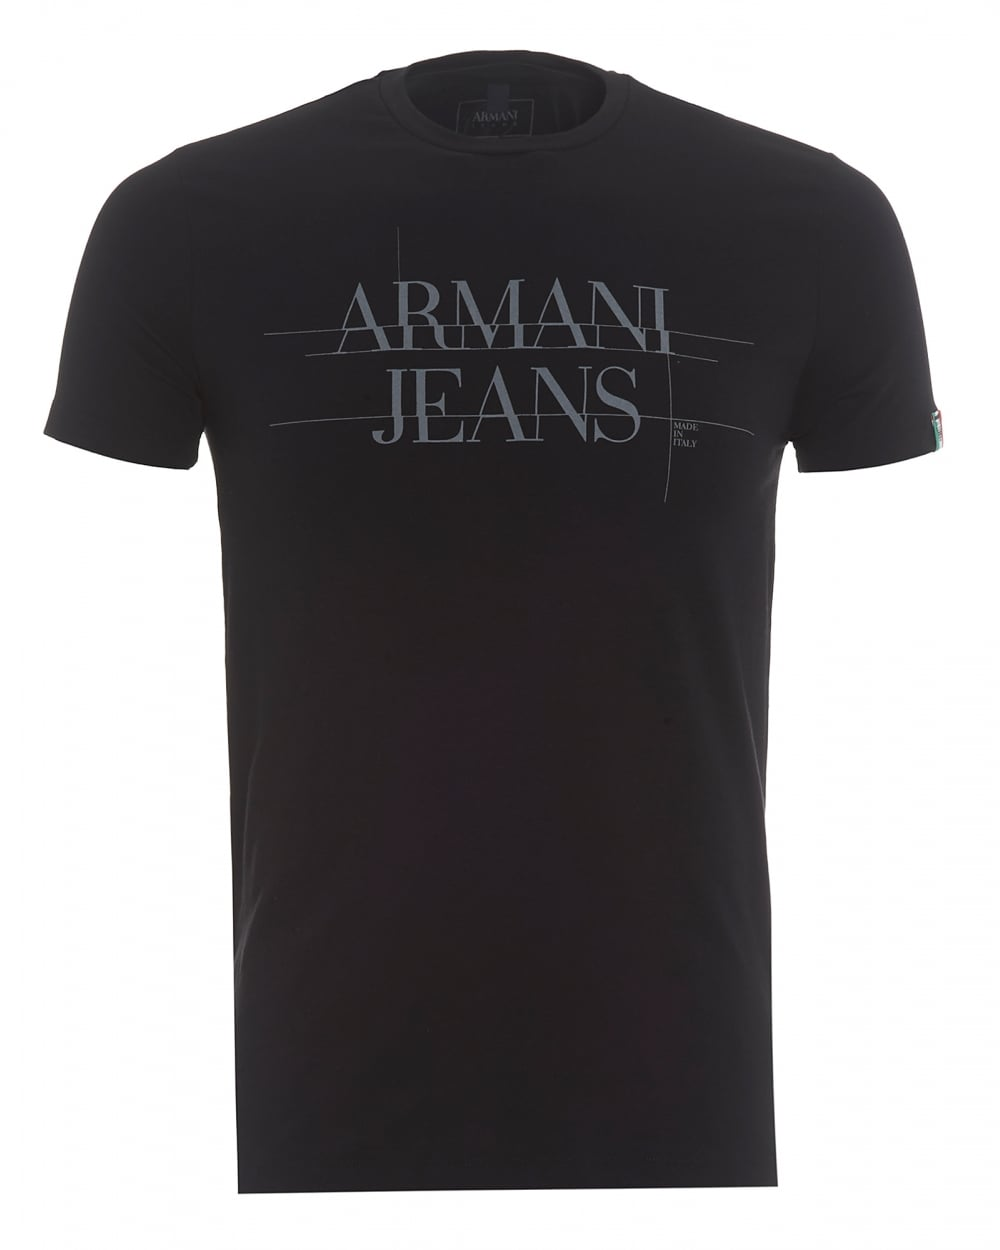 Armani jeans mens made in italy t shirt back logo black tee for Shirts made in italy